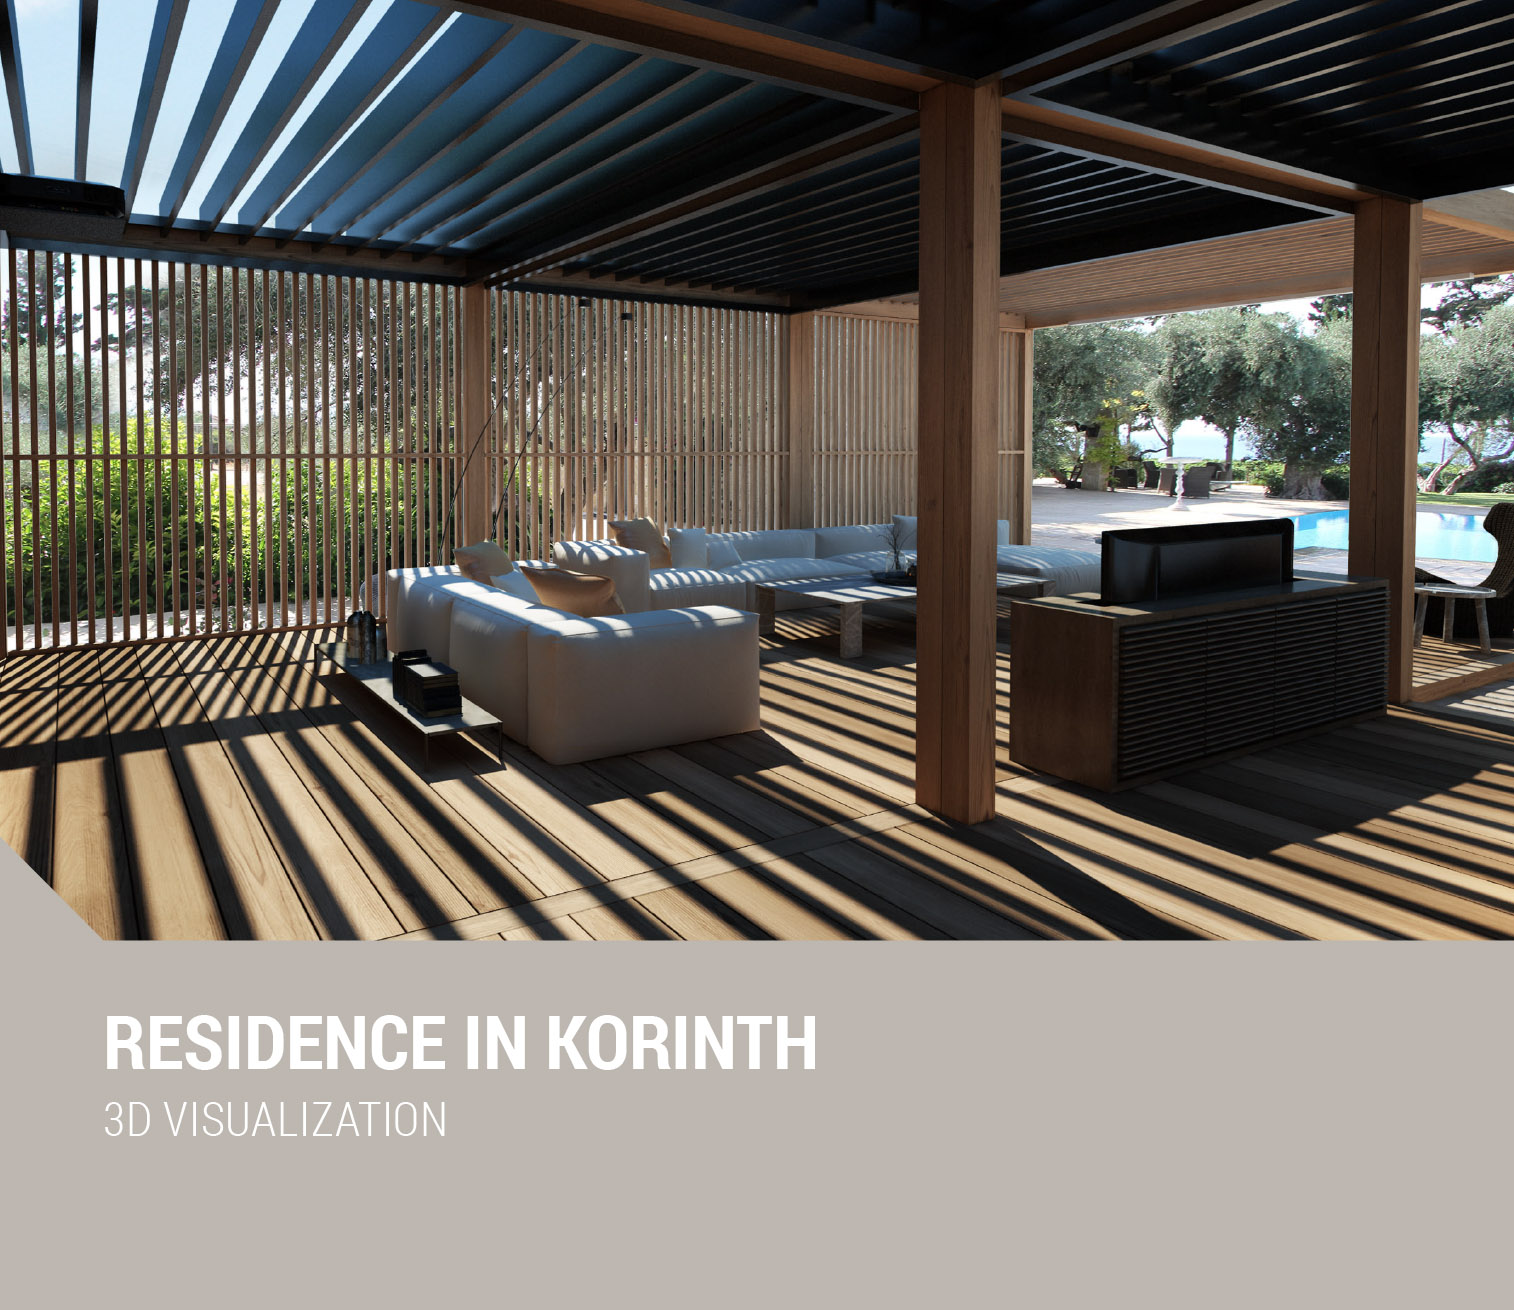 Schema Dimitra Chrona designer, creative director, architectural, 3D visualization, 3D Rendering, branding websites, digital, graphic design, interior design, real estate, luxury property, staging, museum, virtual, art, brochures, exhibitions, logotype, logo, Canada Quebec Montreal Athens Greece schema design residence korinth small.jpg